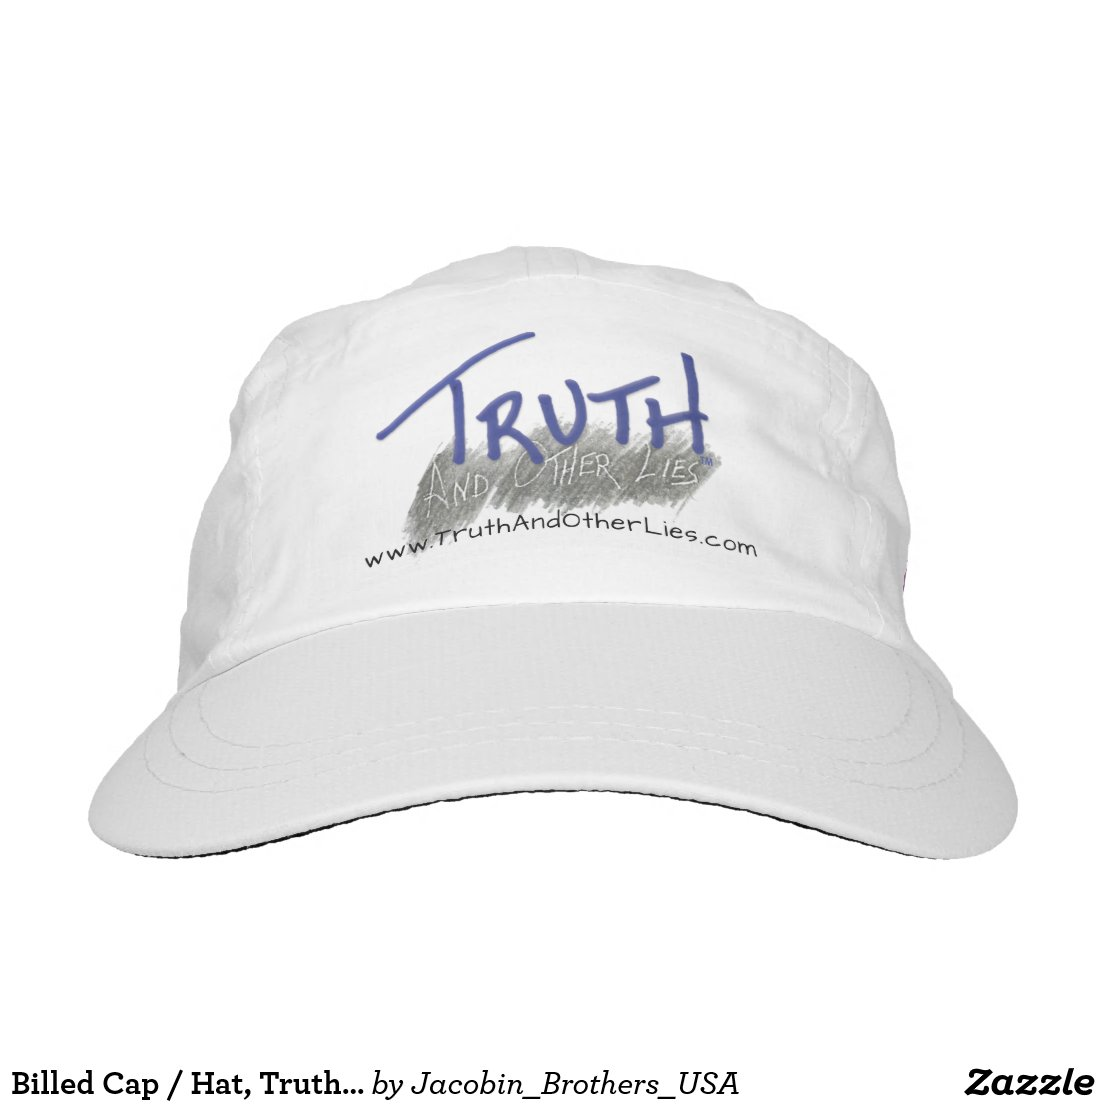 Billed Cap / Hat, Truth and Other Lies™